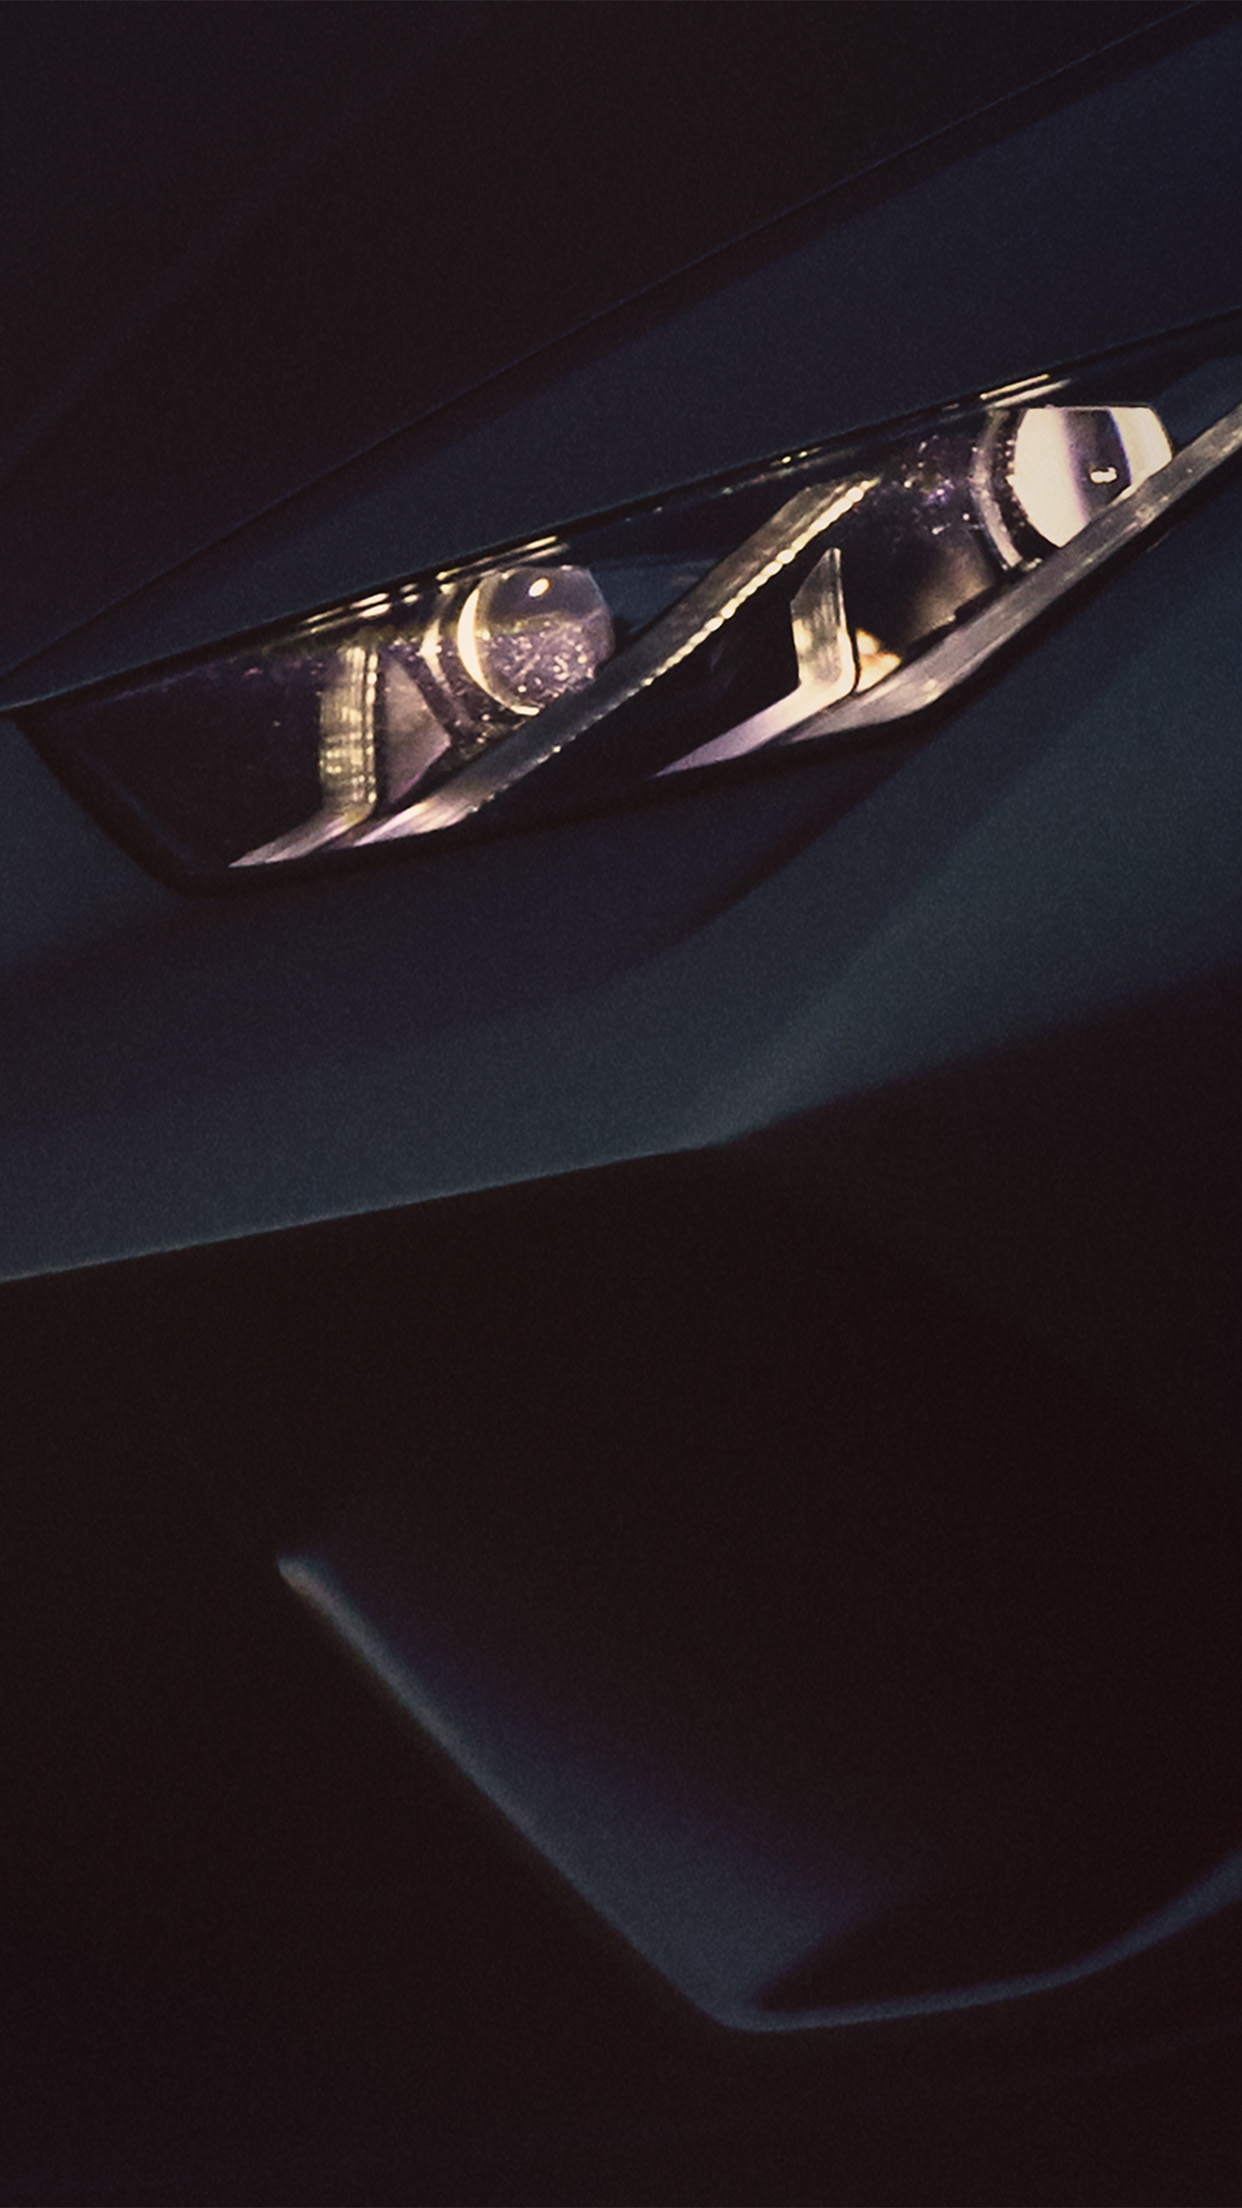 Papers Co Iphone Wallpaper Bf15 Car Lamborghini Light